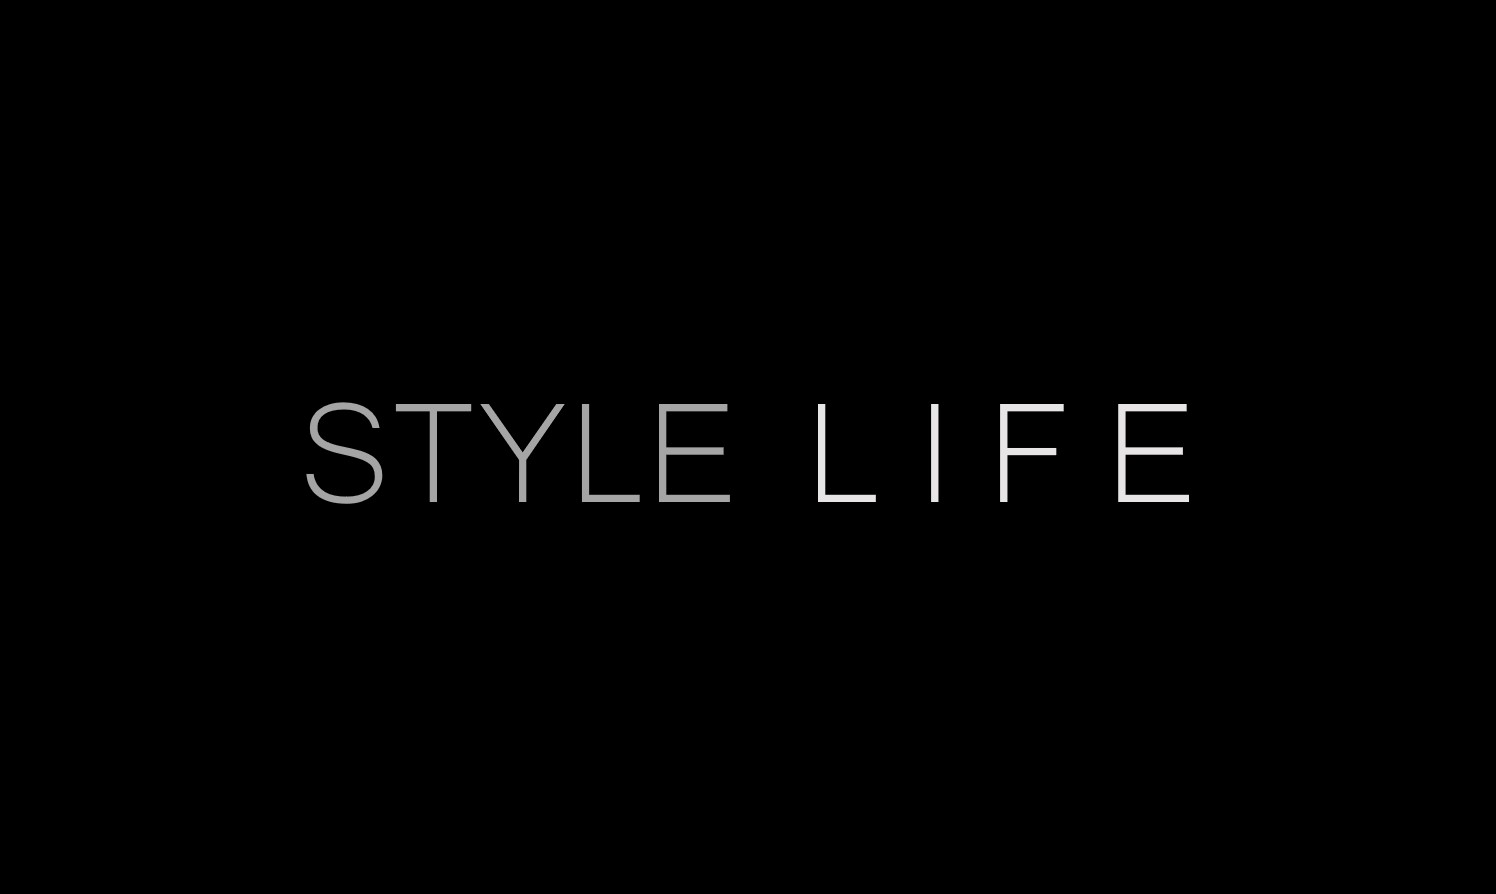 20191122.style.life.banner.in.frame.wix.